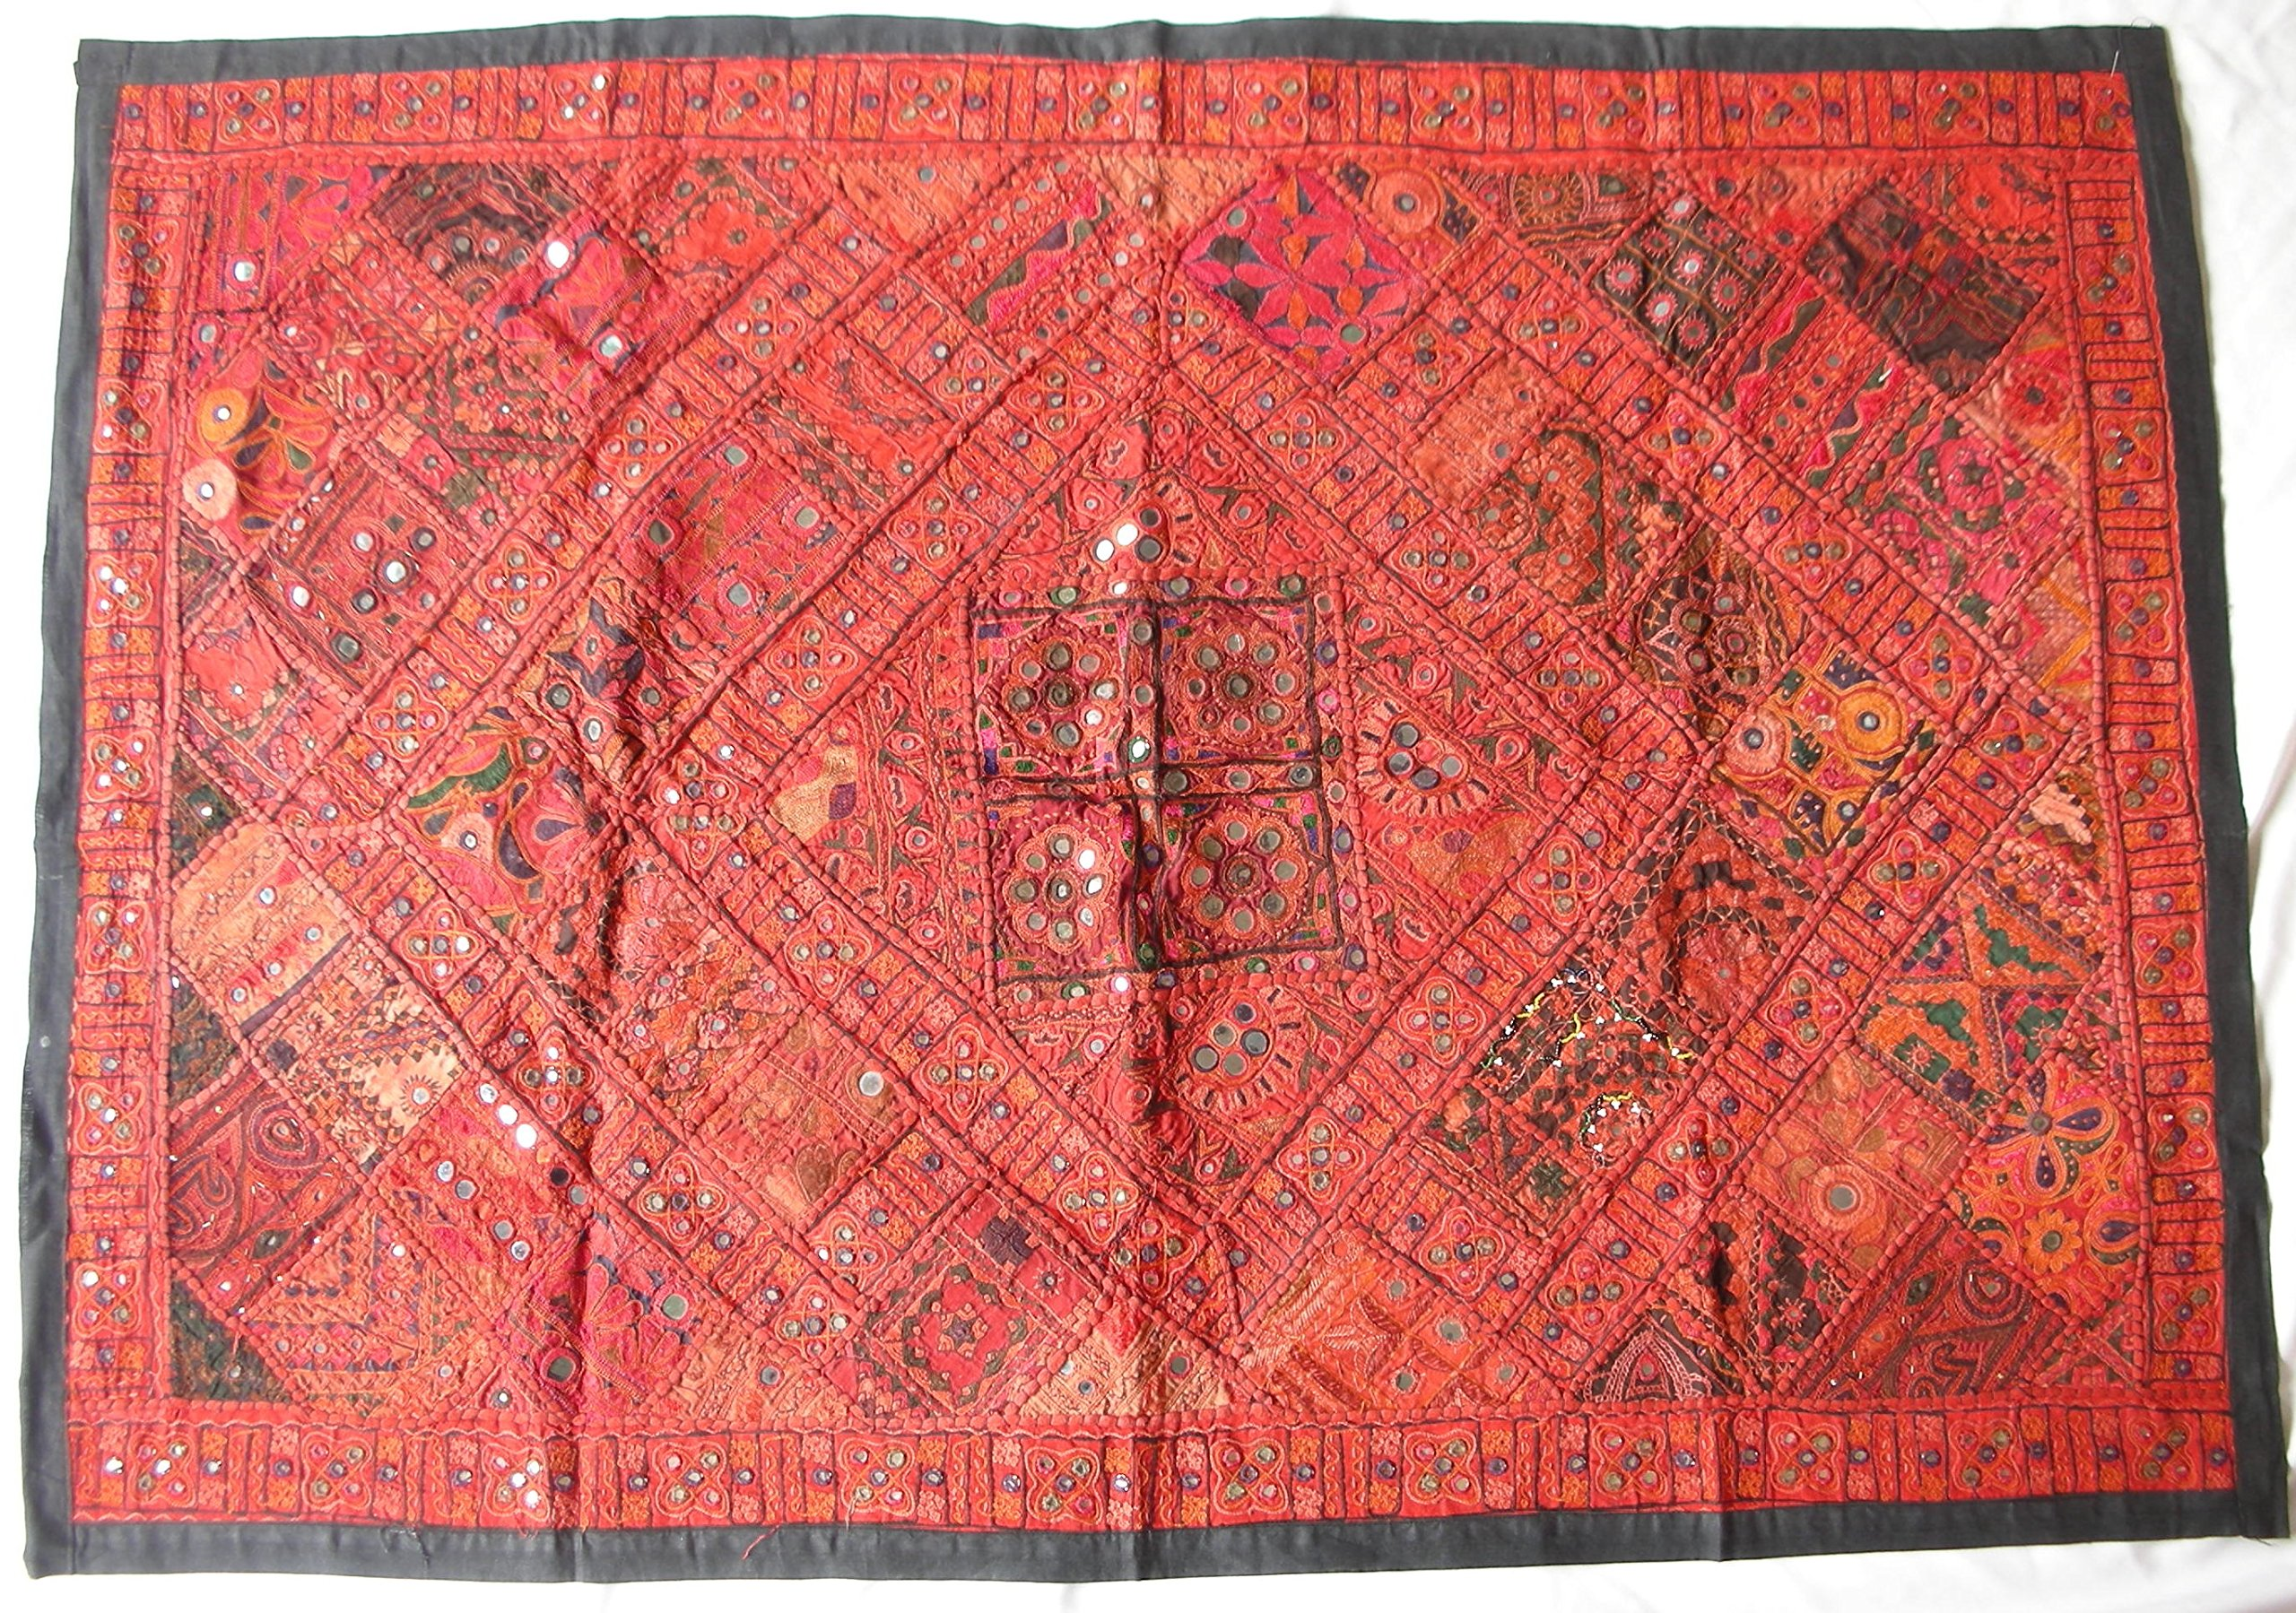 Handmade Sari Kutch Tapestry Quilt with Vintage Sari Fabric, Beads, and Sequins